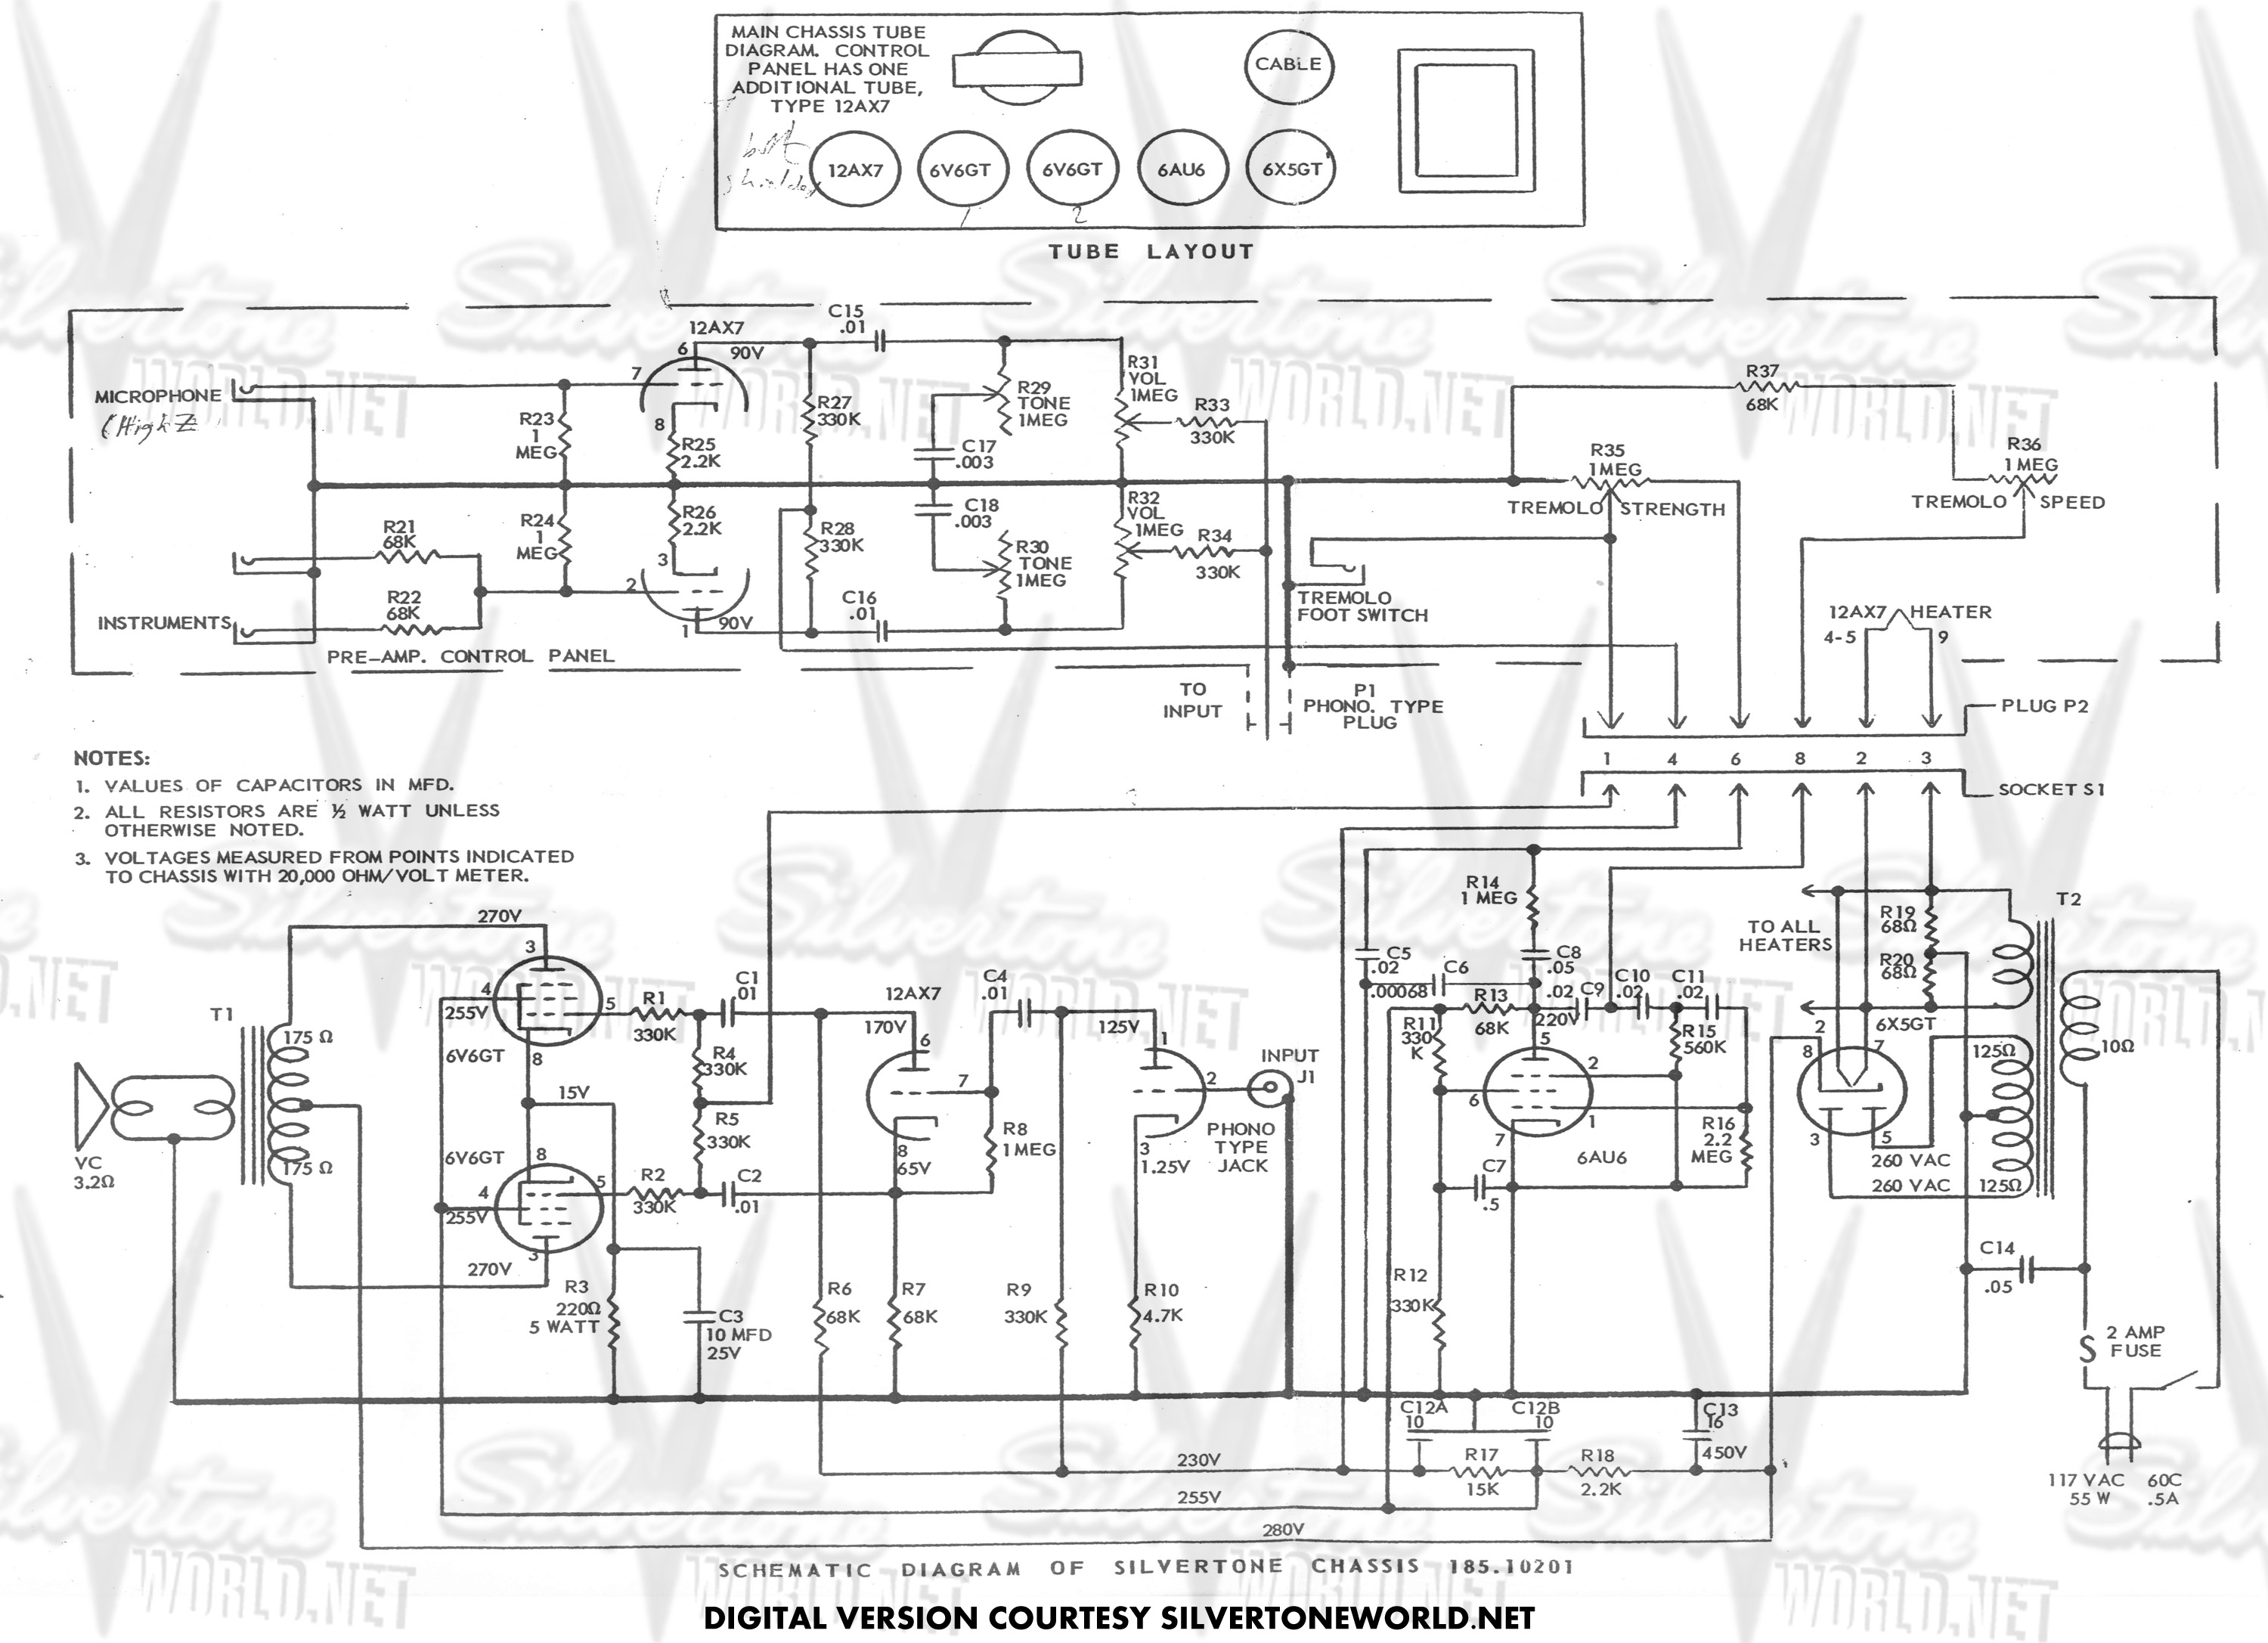 Silvertone Guitar Wiring Diagram : 32 Wiring Diagram